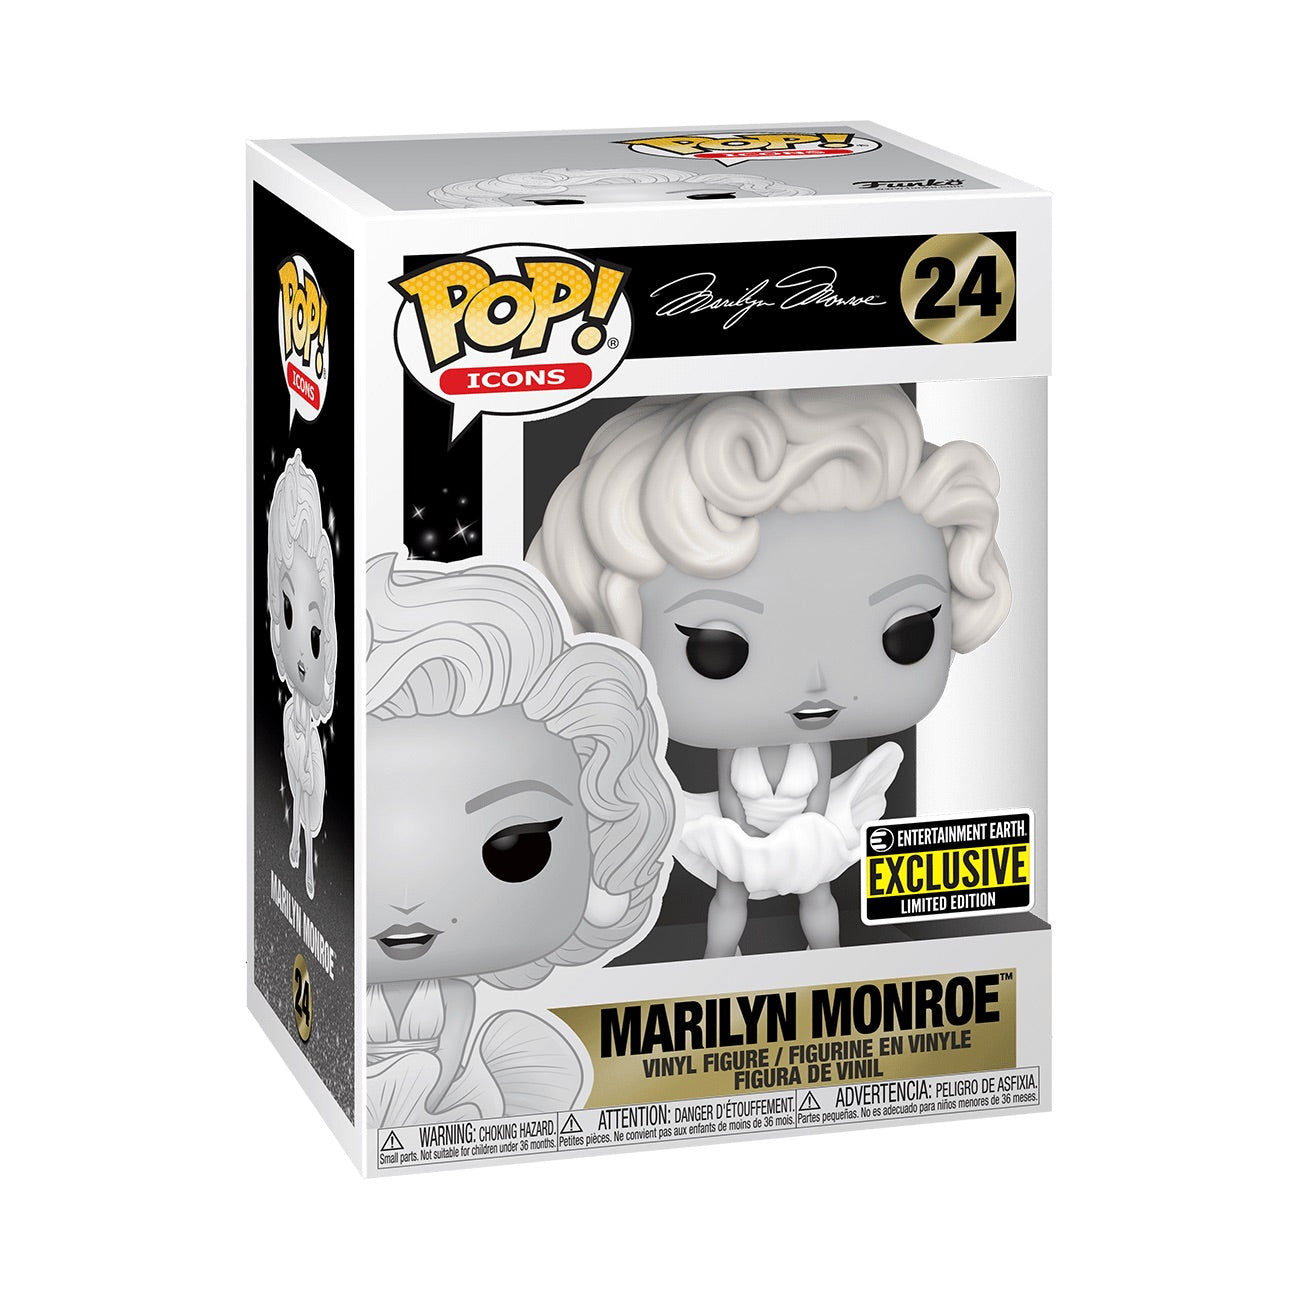 Marilyn Monroe Black and White Exclusive